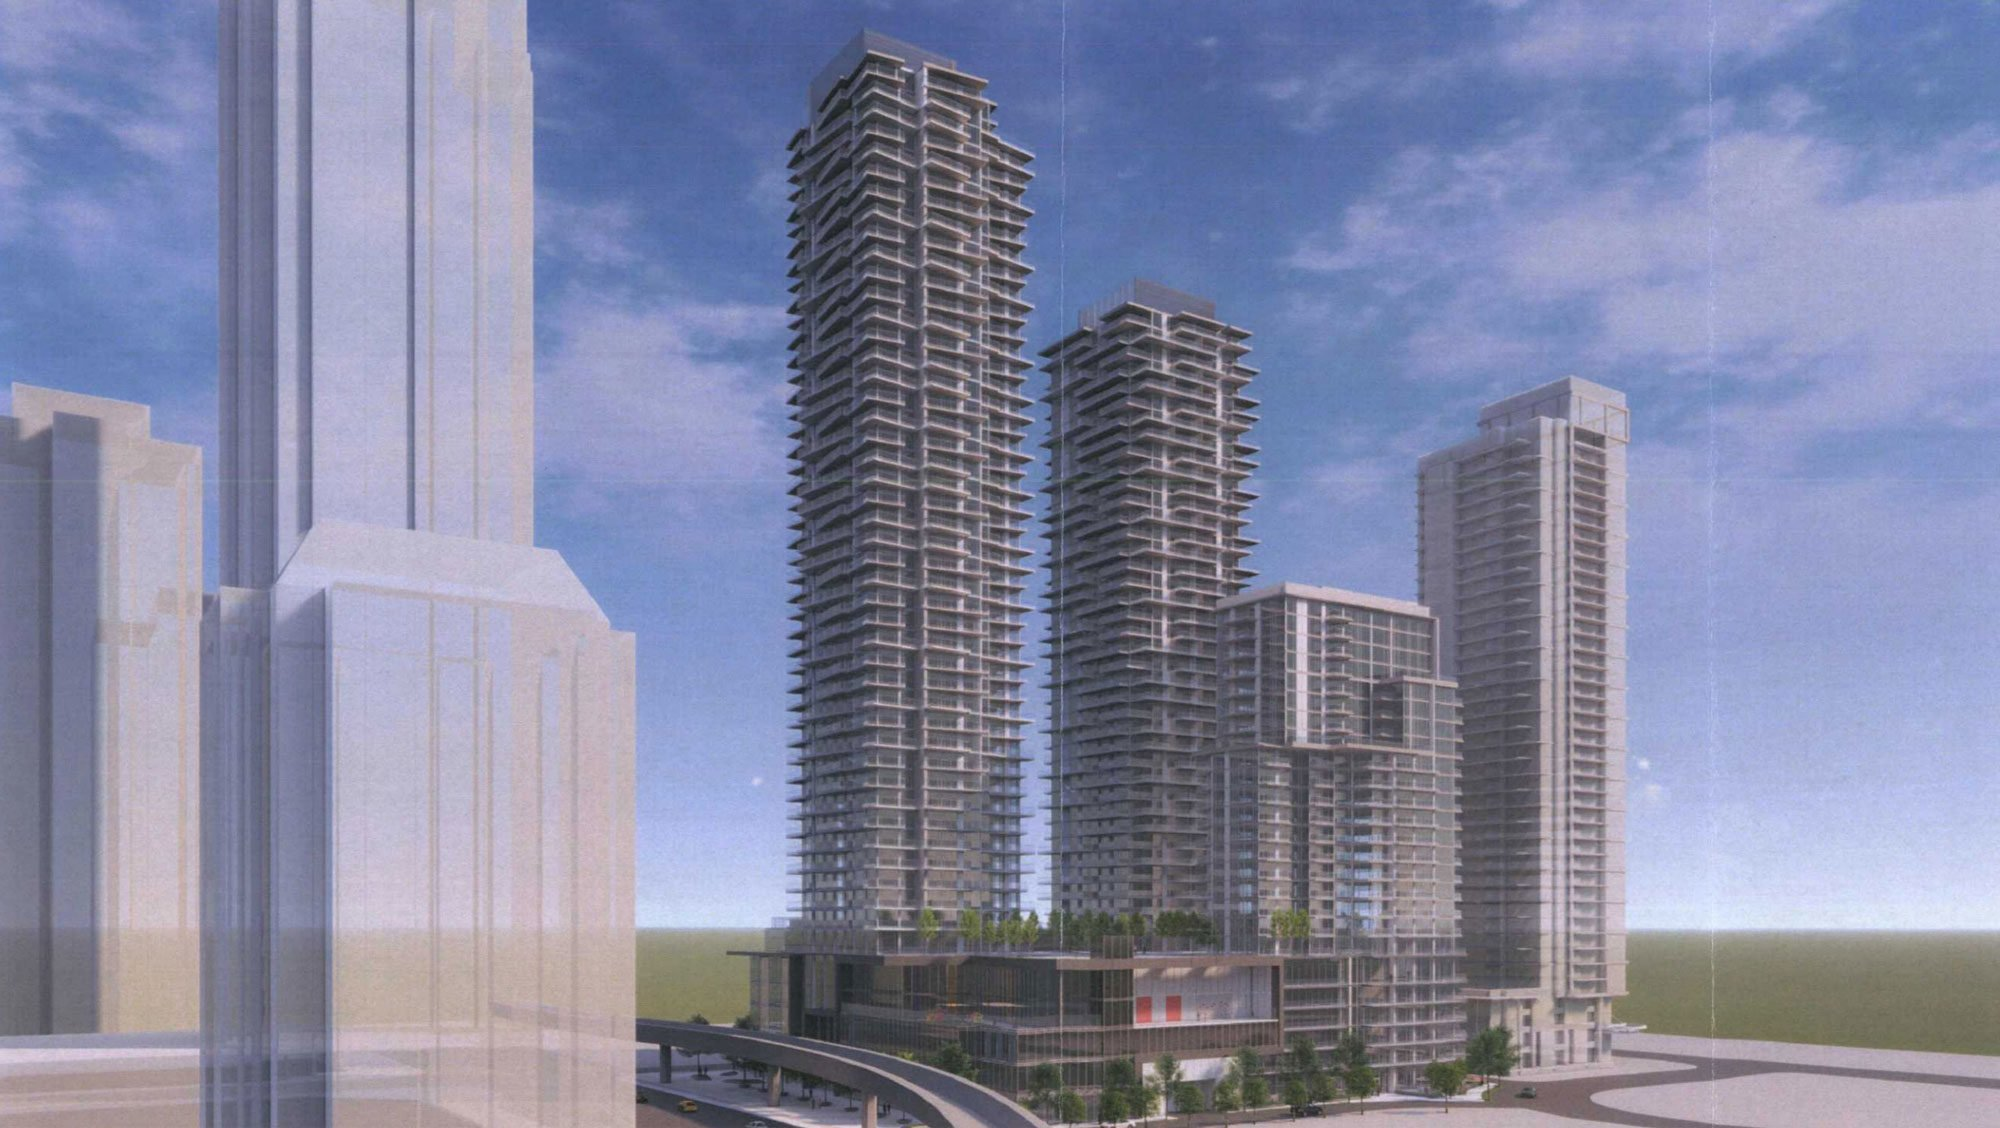 Onni Group planning nearly 1,000 residential units in Coquitlam